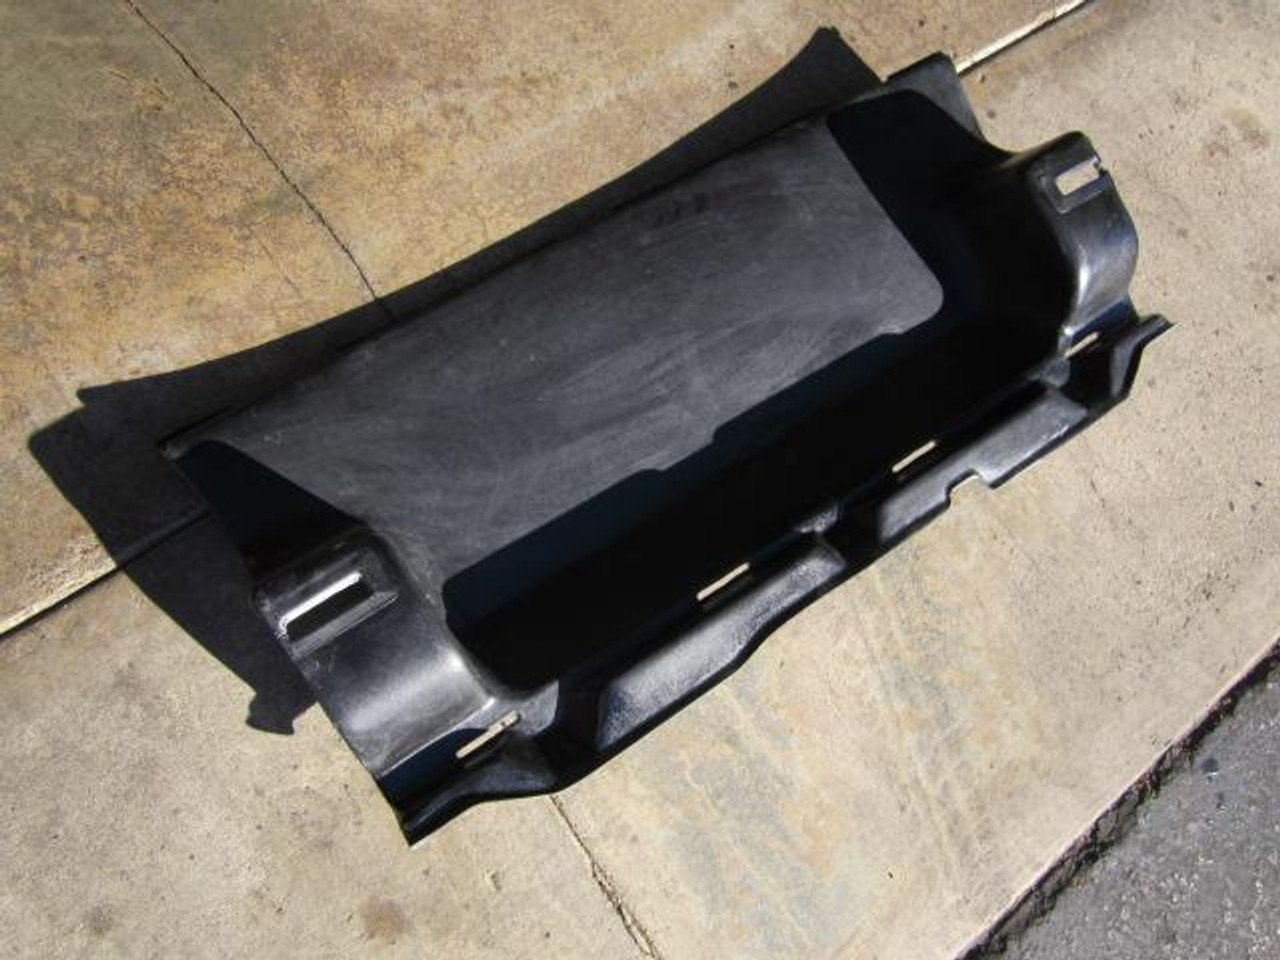 Pininfarina style rear rear seat back panel insert Similar to the one installed on the 1983-1985.5 Spiders FIAT 124 Spider, Spider 2000 and Pininfarina - 1966-1985 - Auto Ricambi